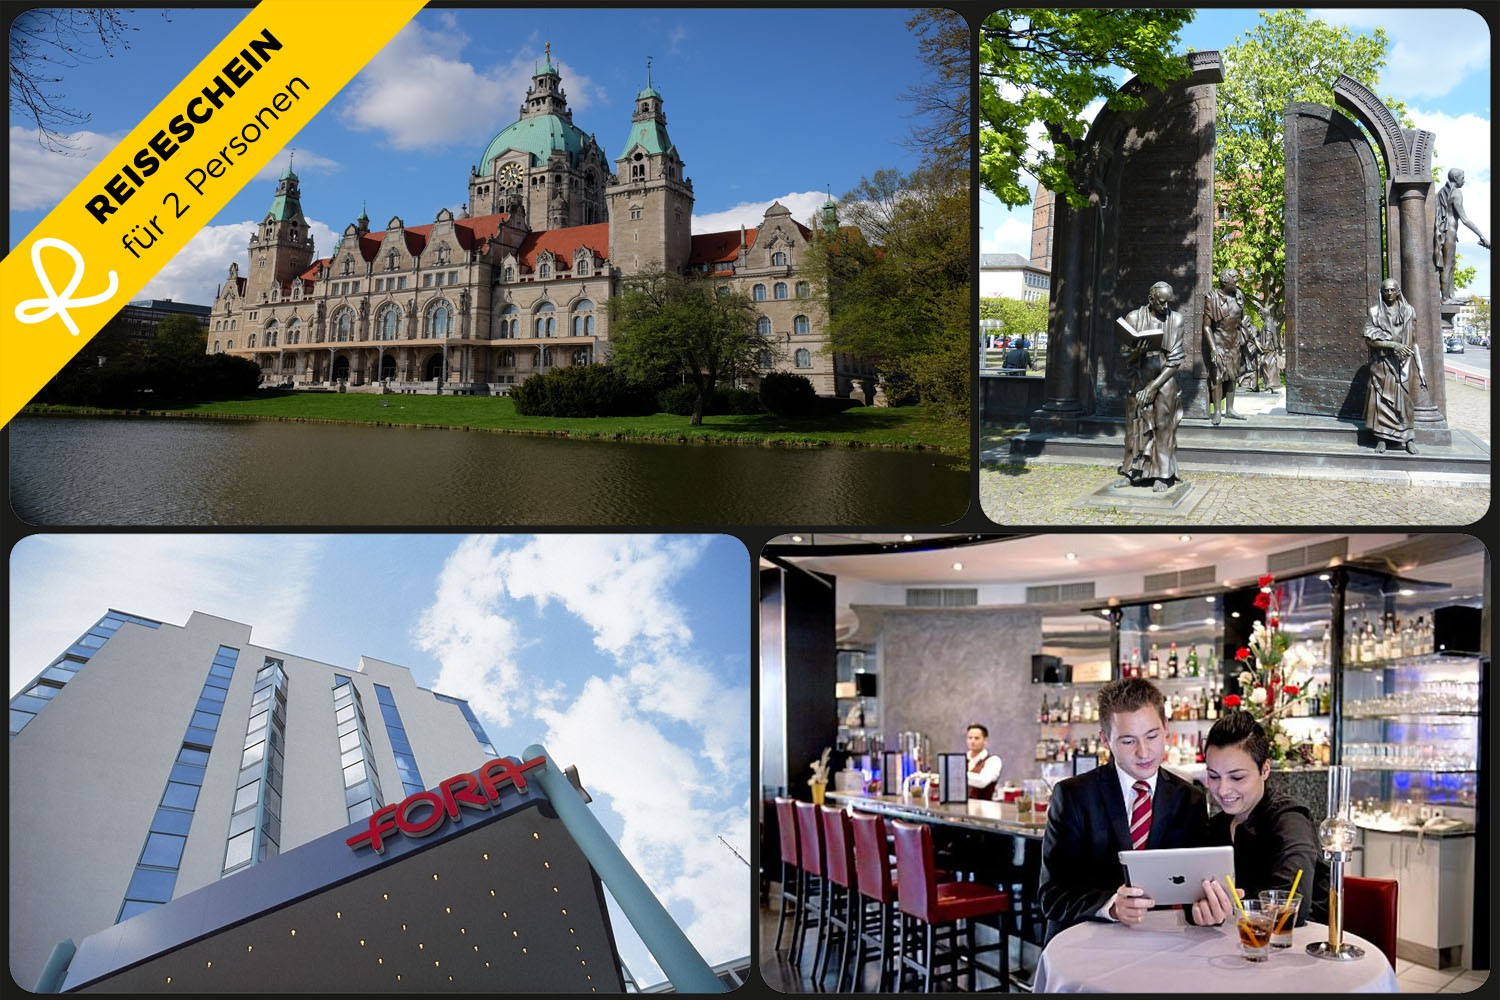 3 Tage im **** Fora Hotel Hannover in Hannover ...